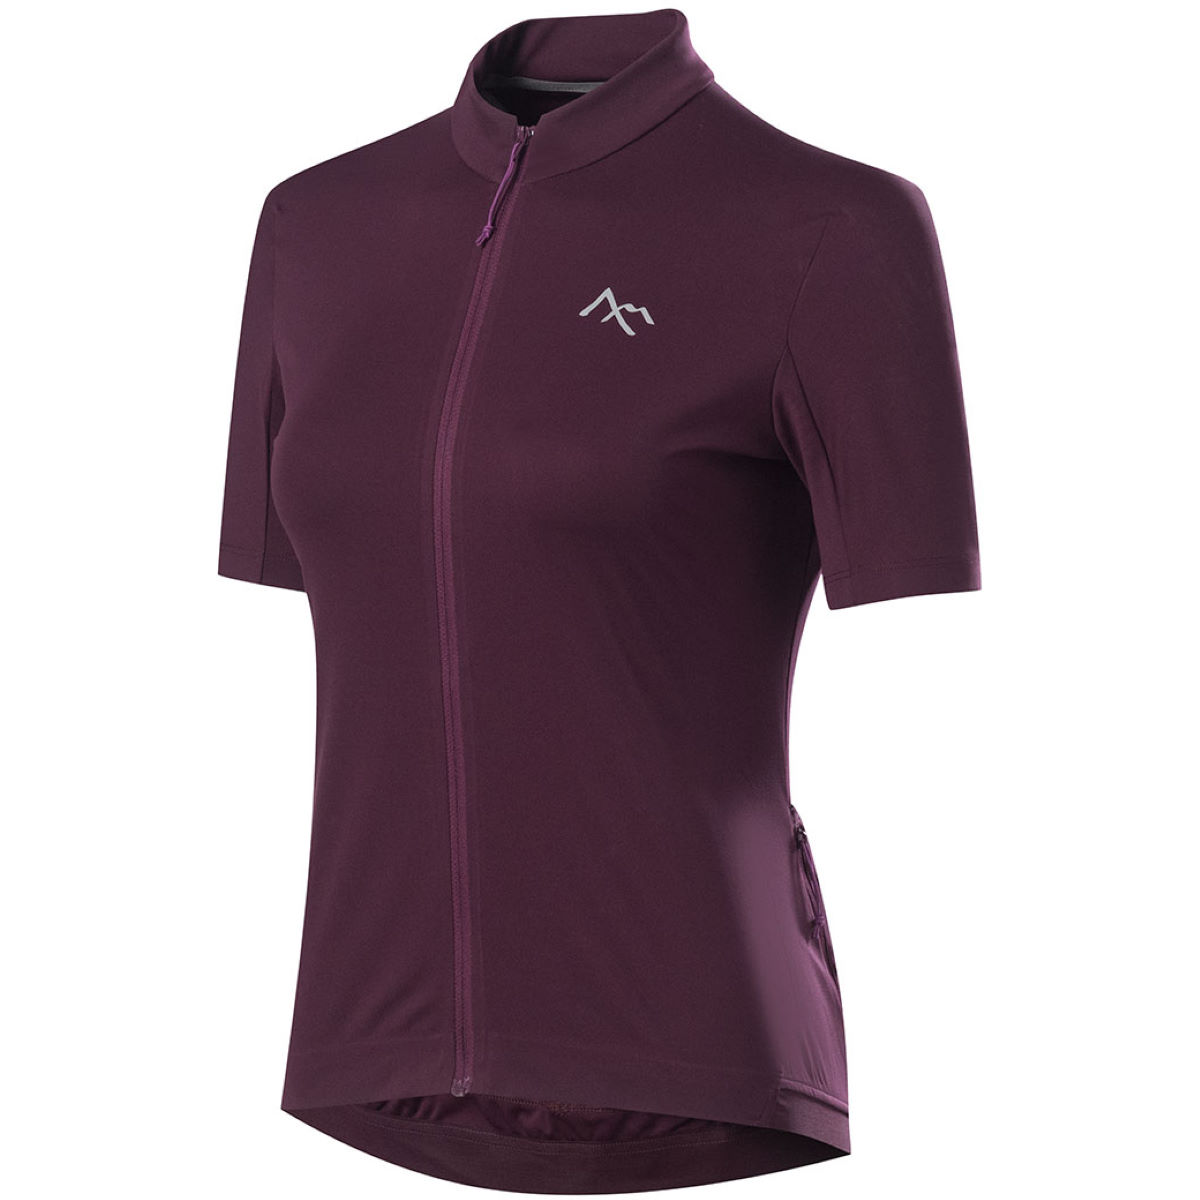 Maillot Femme 7Mesh Britannia - XL Royal Purple